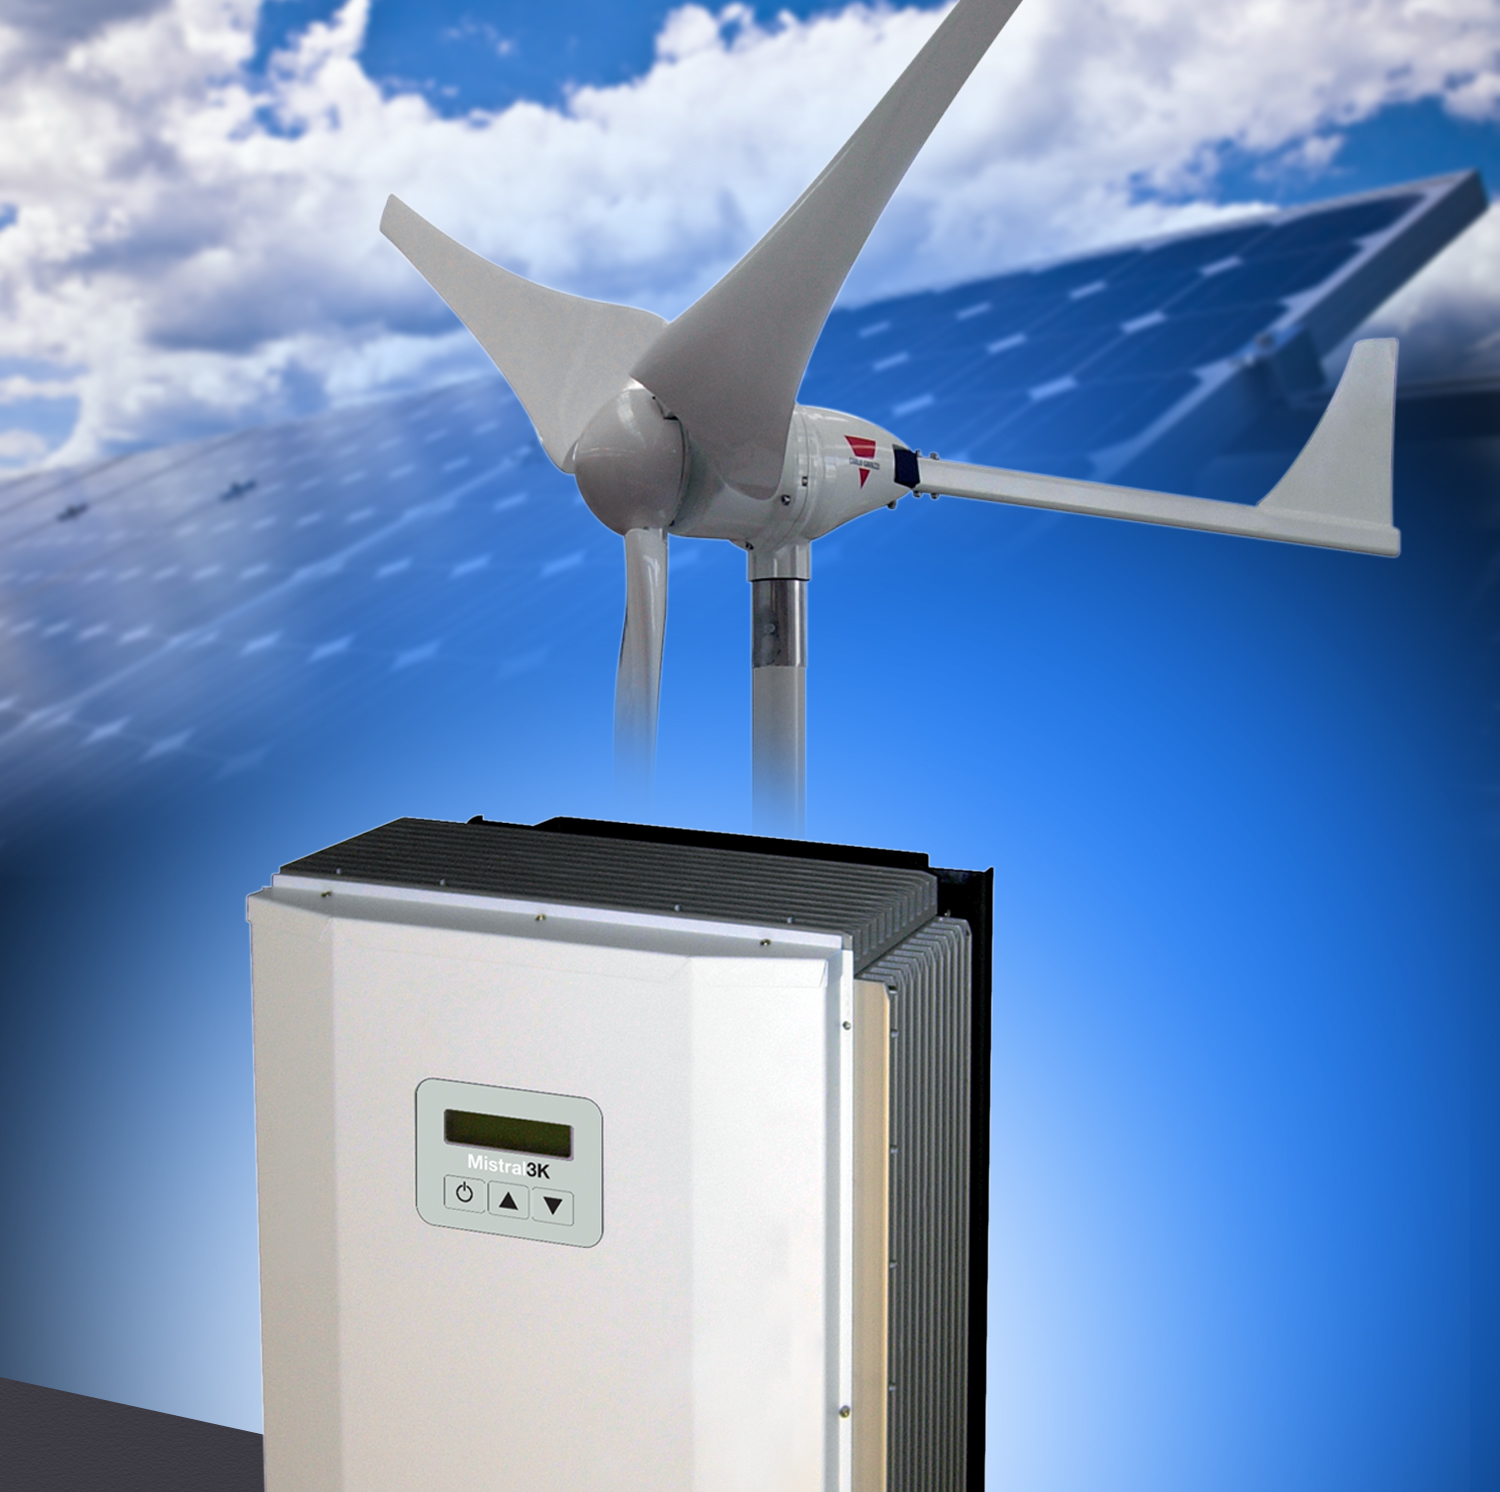 Wind turbine solution delivers 3kW